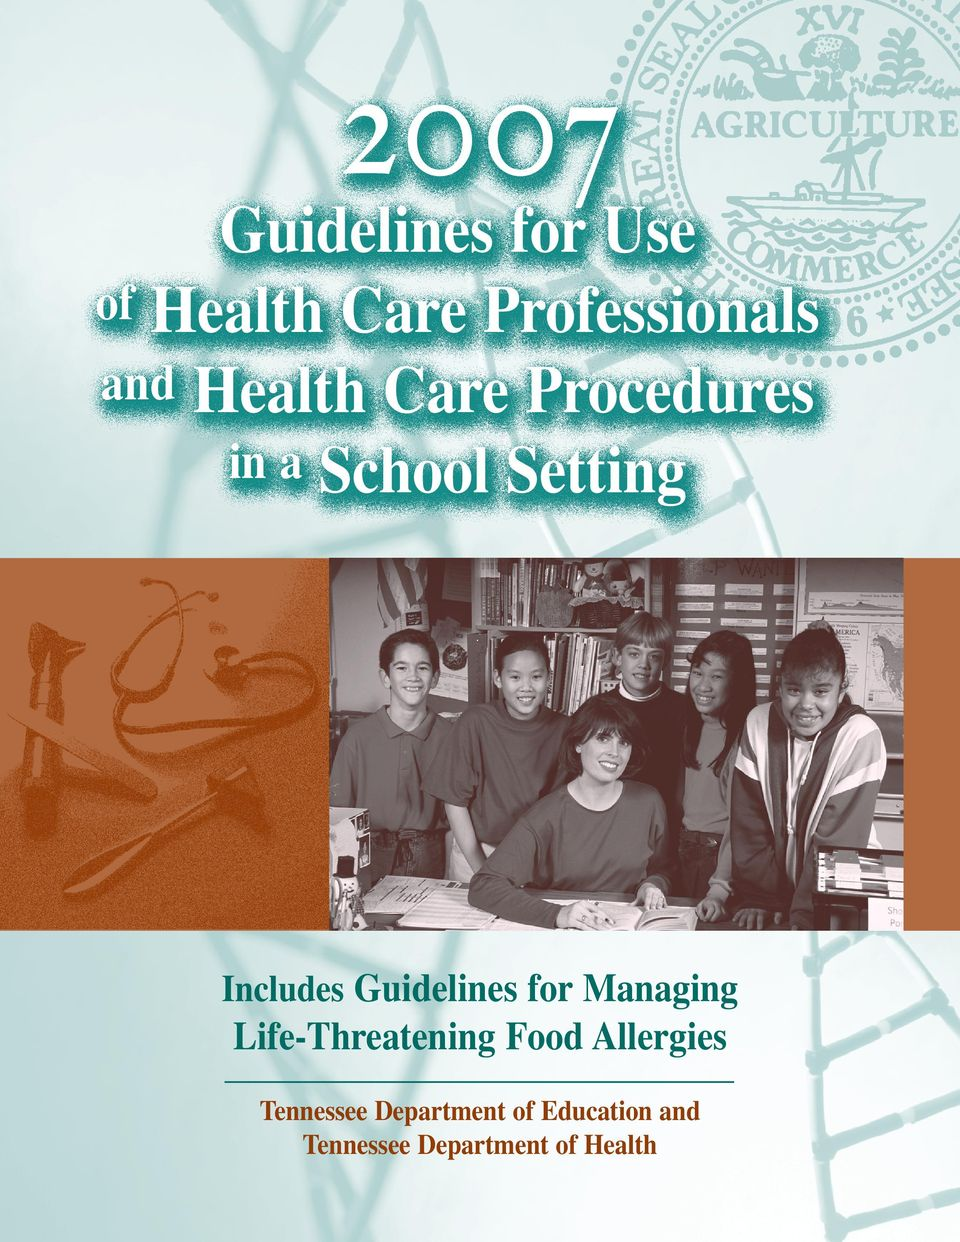 Guidelines for Managing Life-Threatening Food Allergies